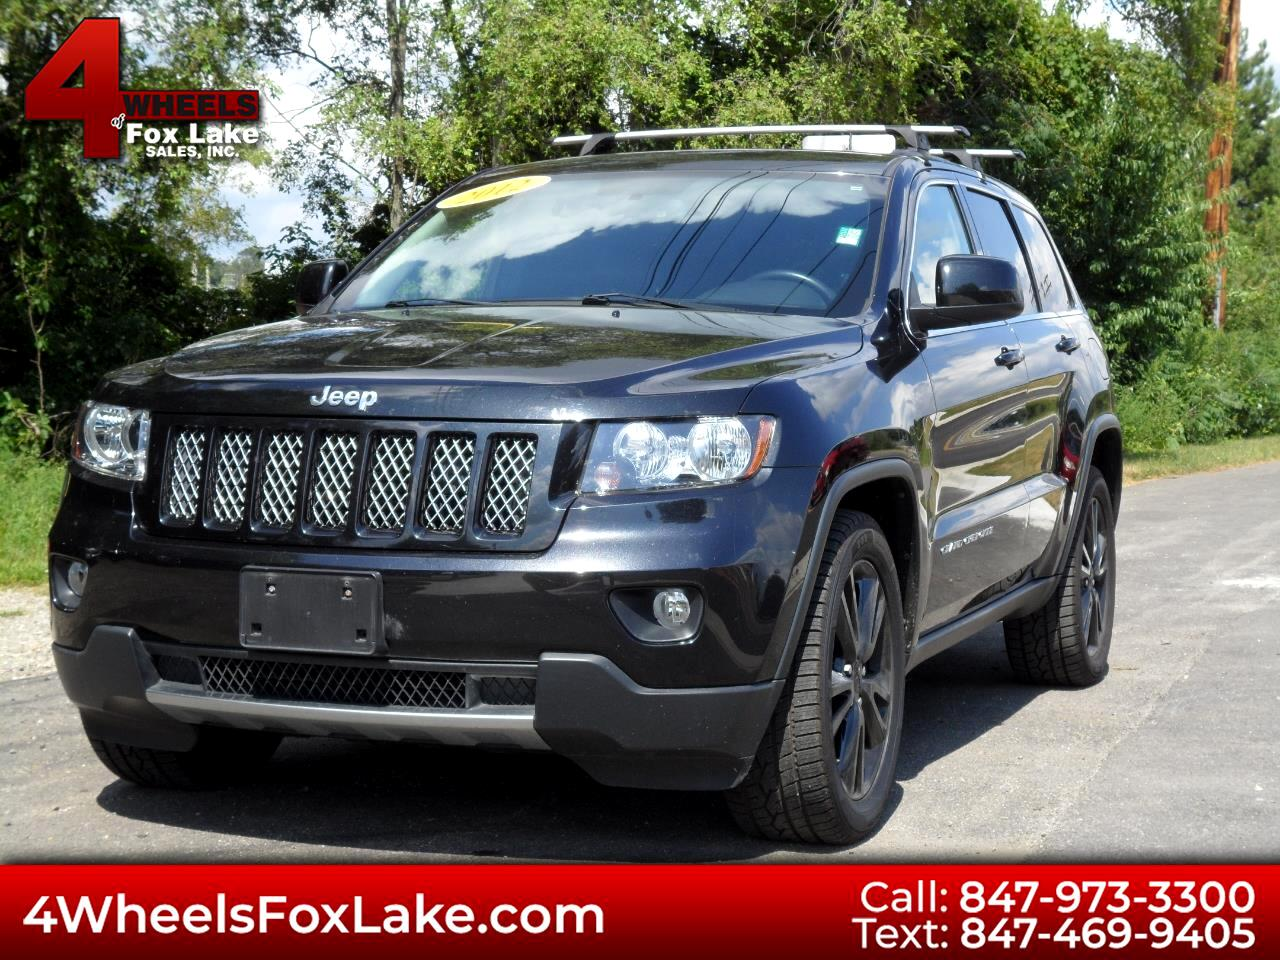 2012 Jeep Grand Cherokee High Altitude 4x4